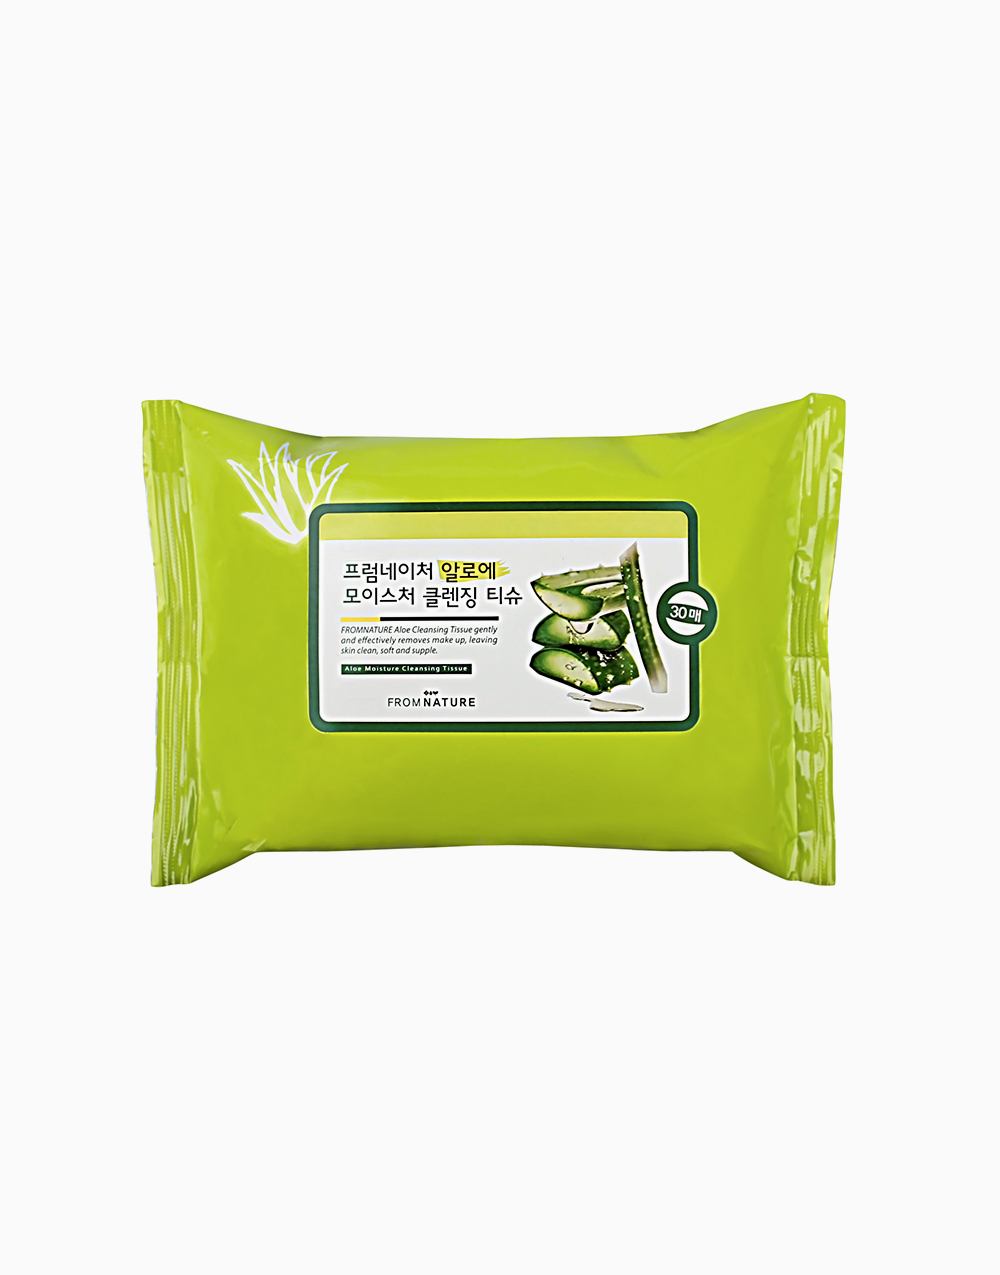 Aloe Moisture Cleansing Tissue by FROMNATURE